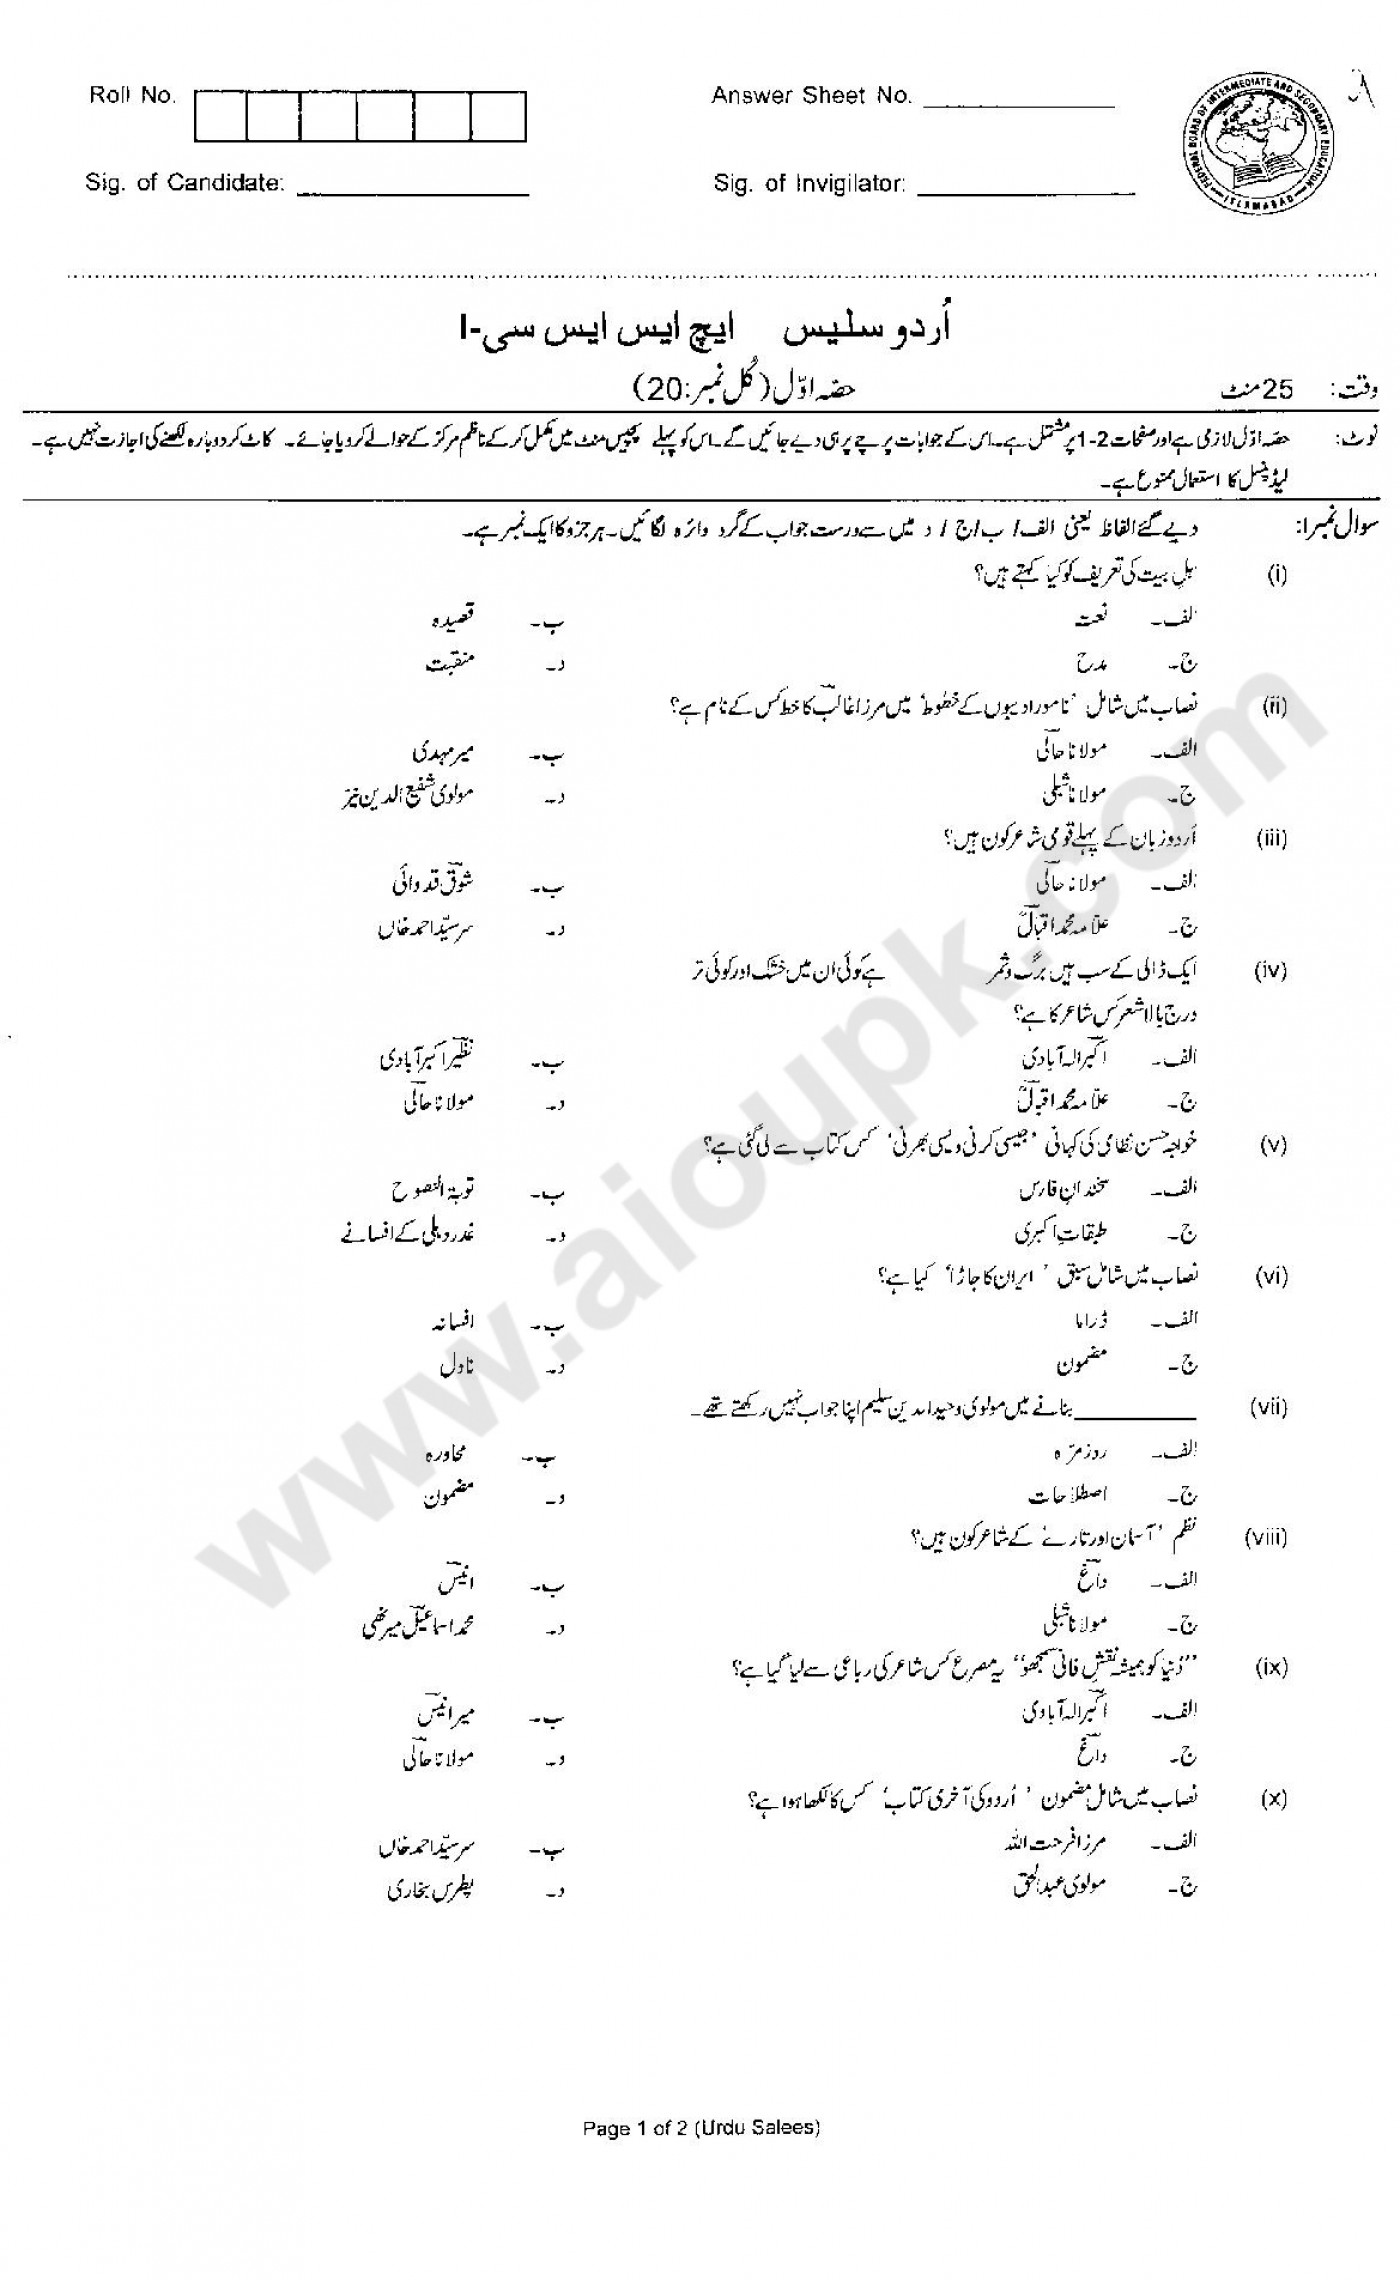 014 Essay Example Urdu Salees Of Hssc Annual Examinations Part Page Allama Dreaded Iqbal On In For Class 10 With Poetry Ka Shaheen Headings And 1400